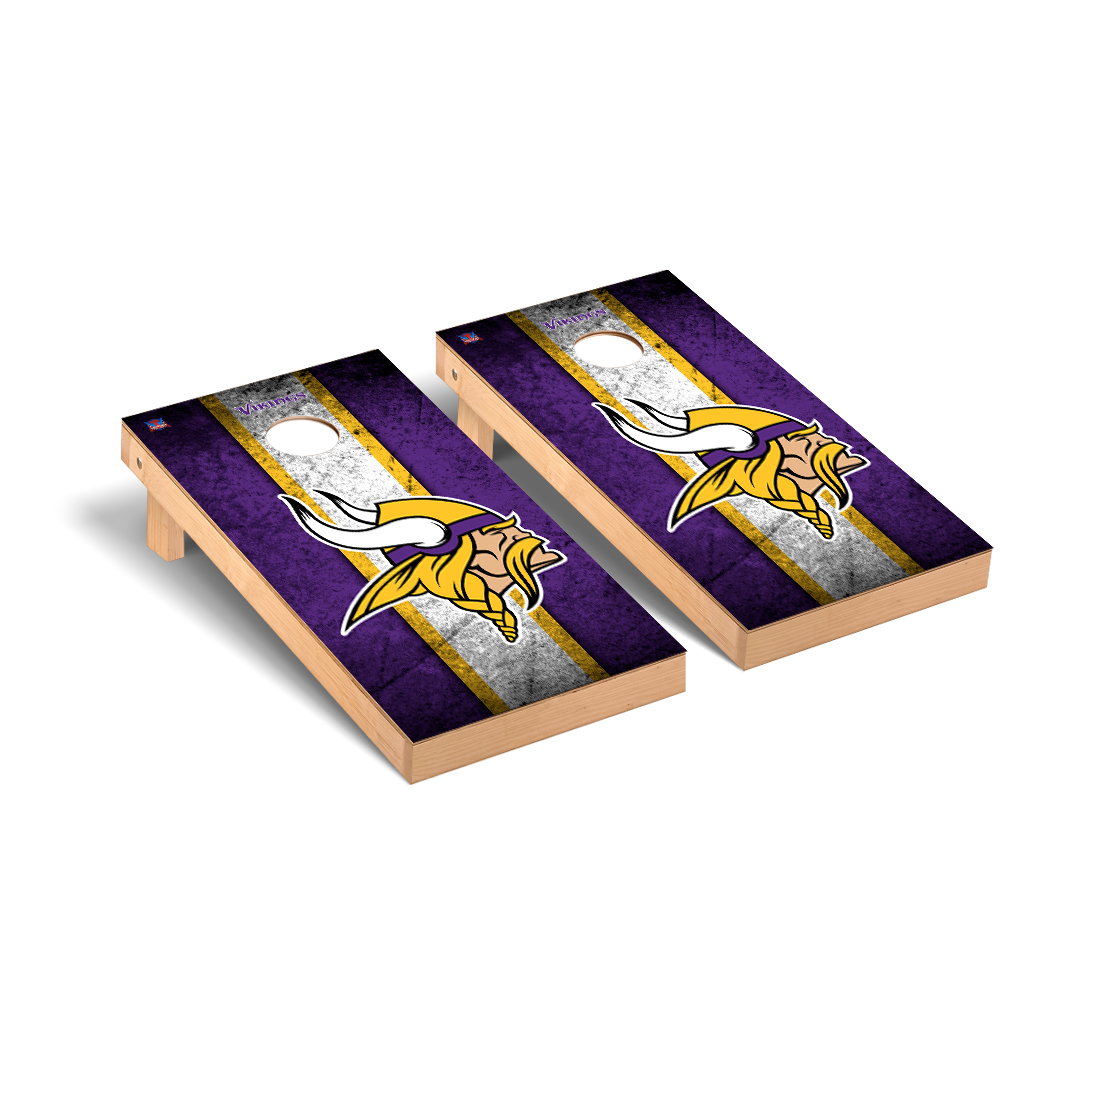 Minnesota Vikings NFL Football Cornhole Game Set Vintage Version 2